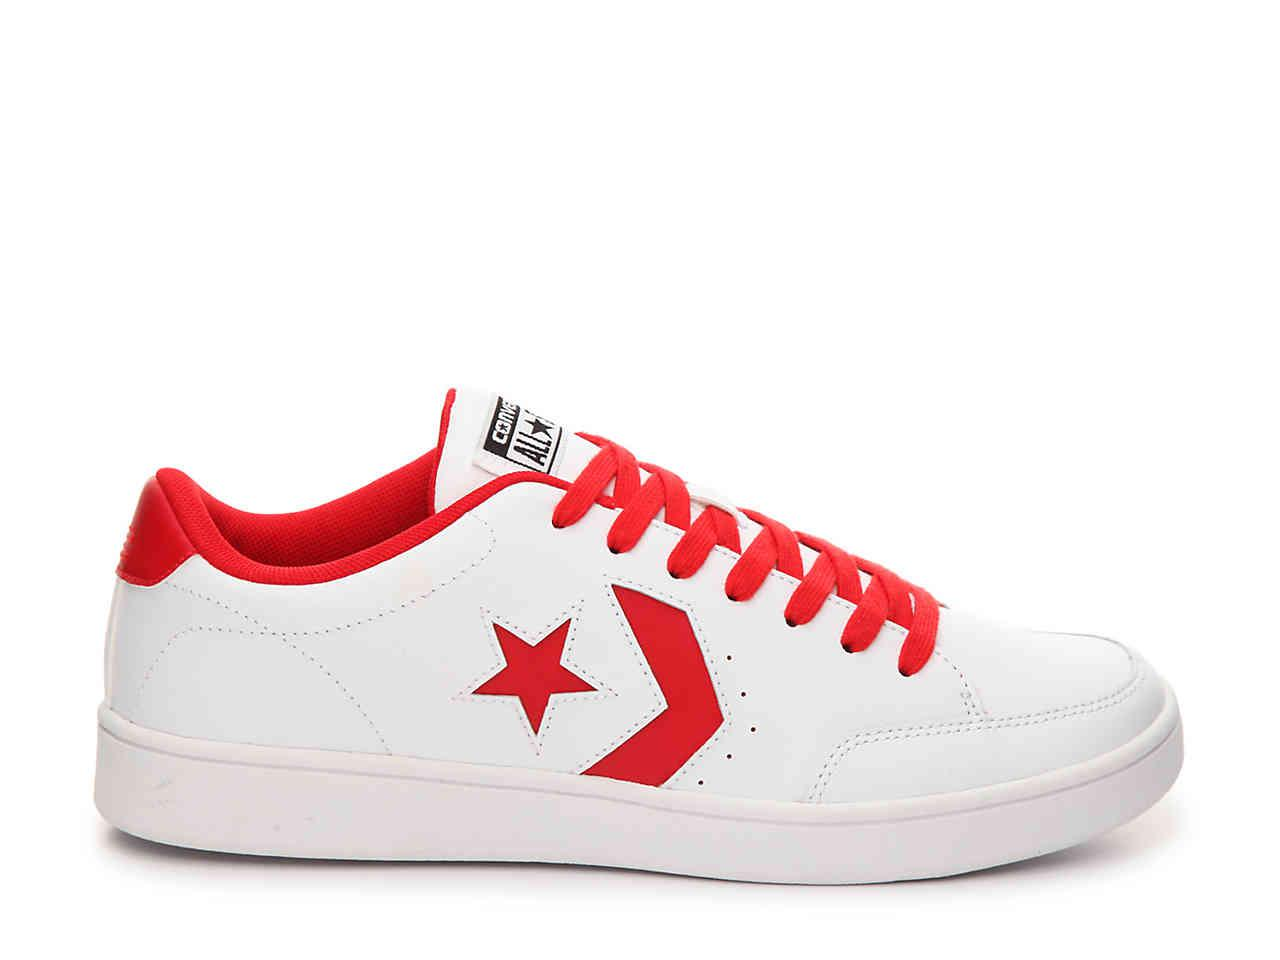 Converse Star Court Sneaker in White/Red (Red) - Lyst